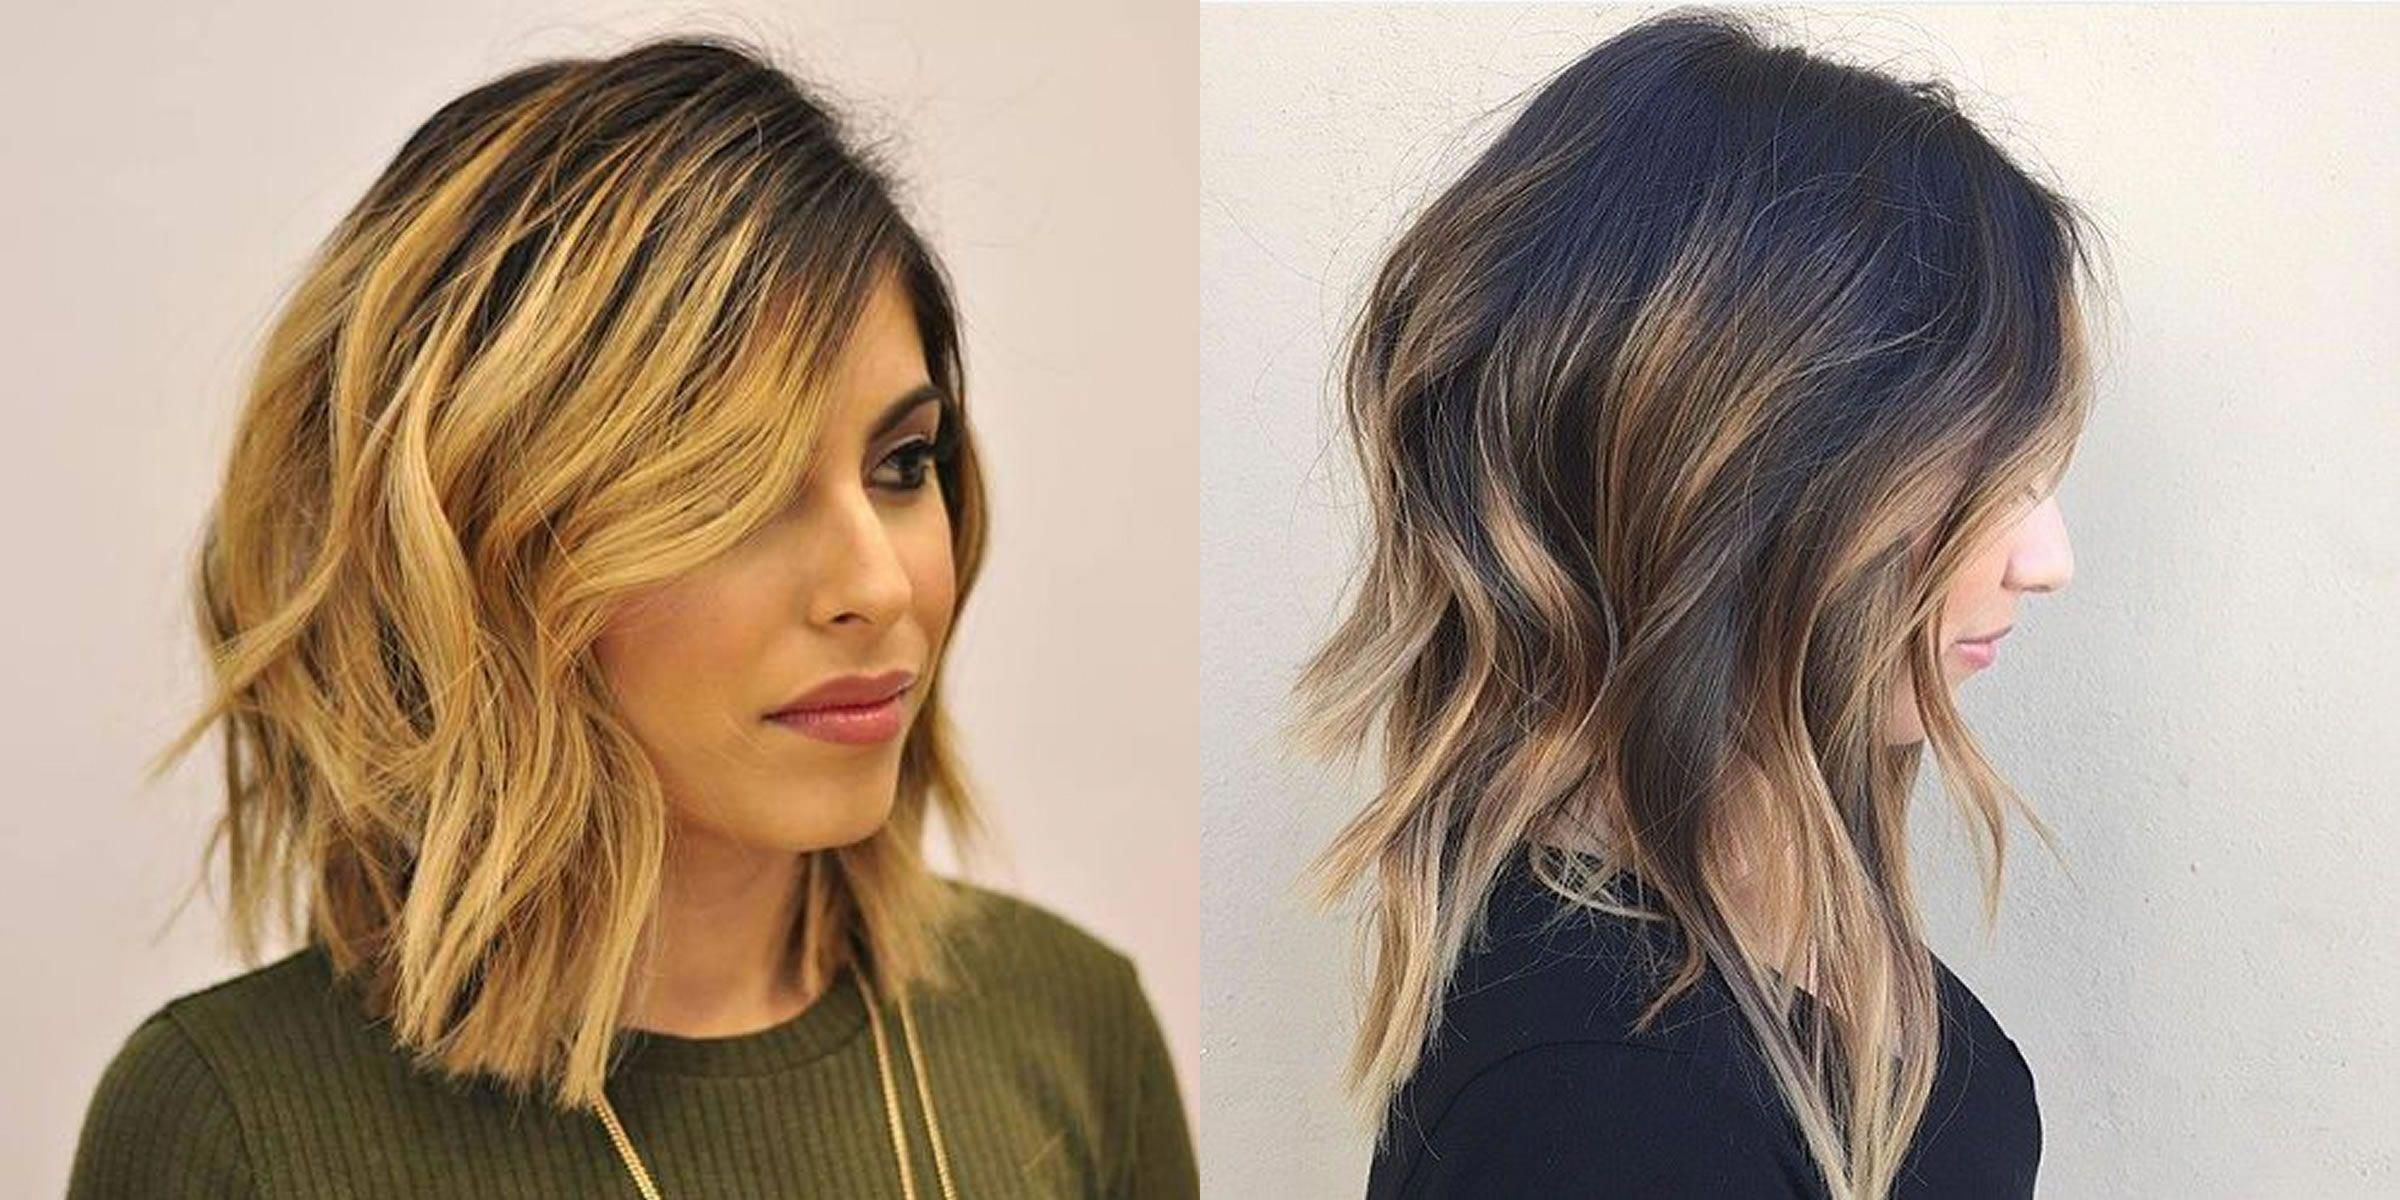 different haircuts for women 2019 #differentstylesformenshaircuts